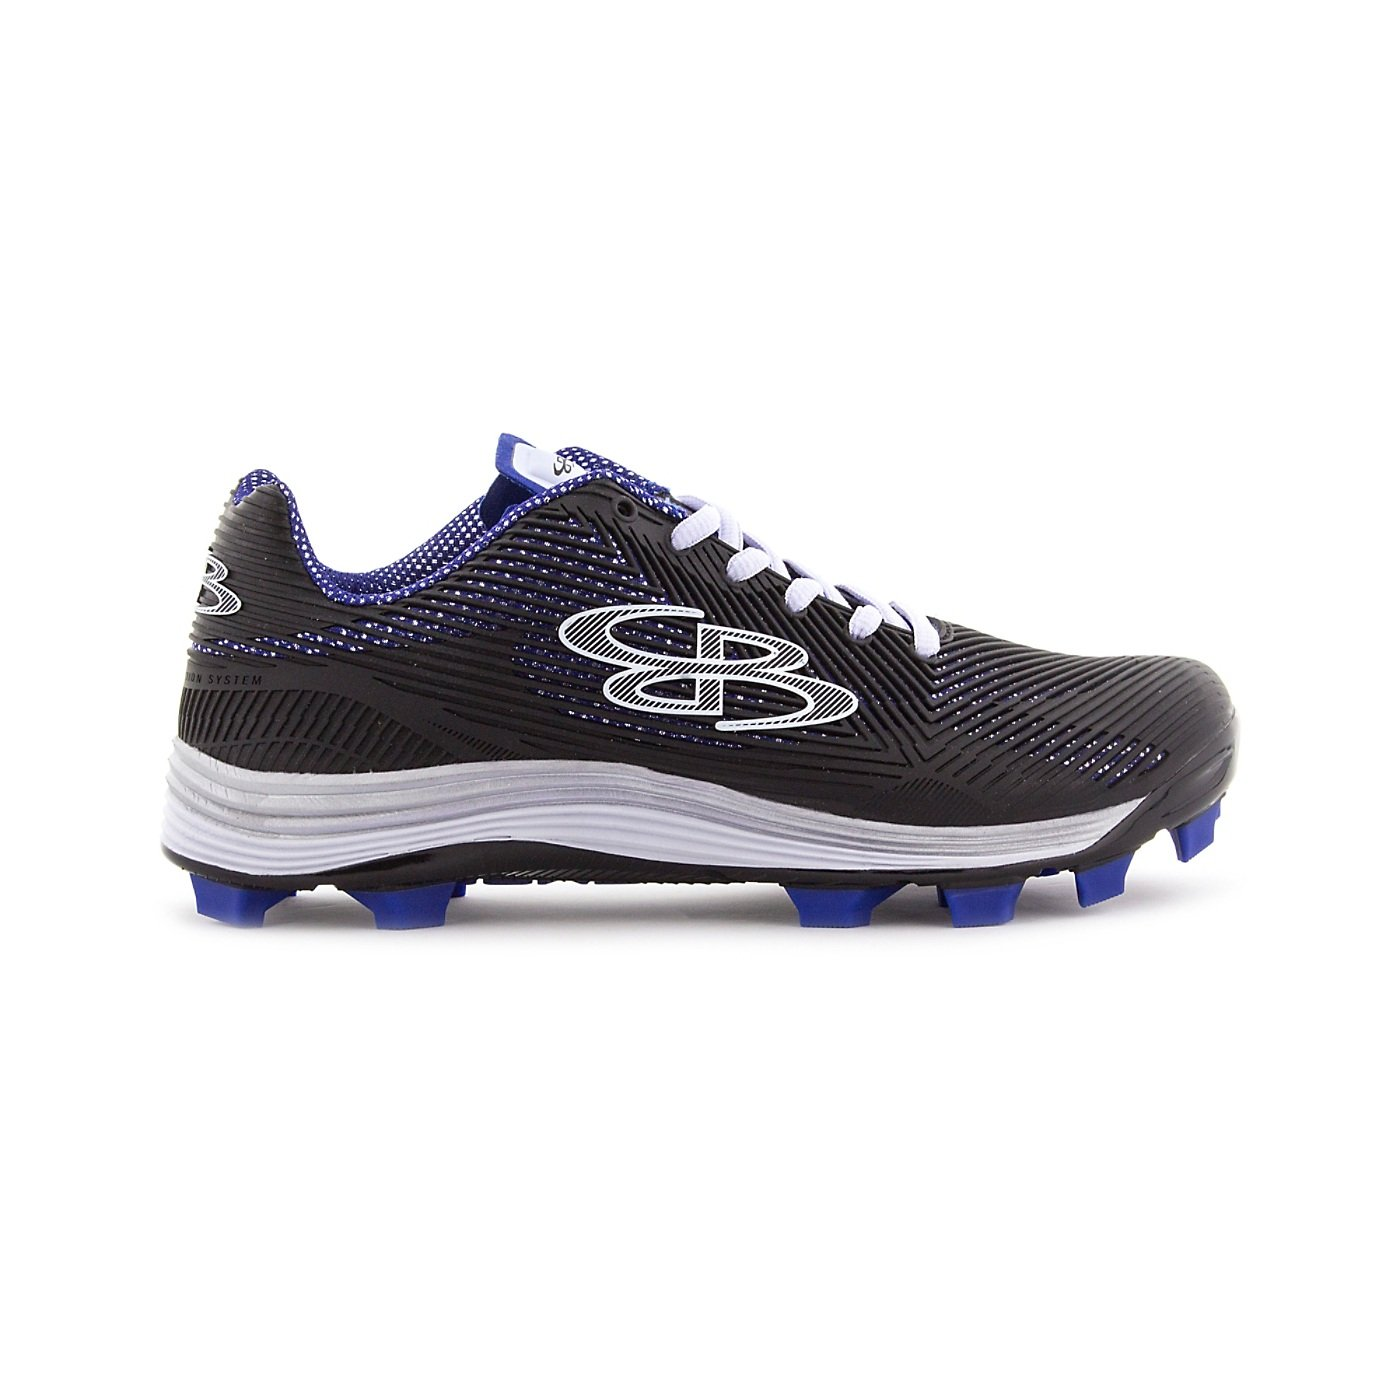 Boombah Women's Spotlight Molded Cleat Black/Royal Blue - Size 4.5 by Boombah